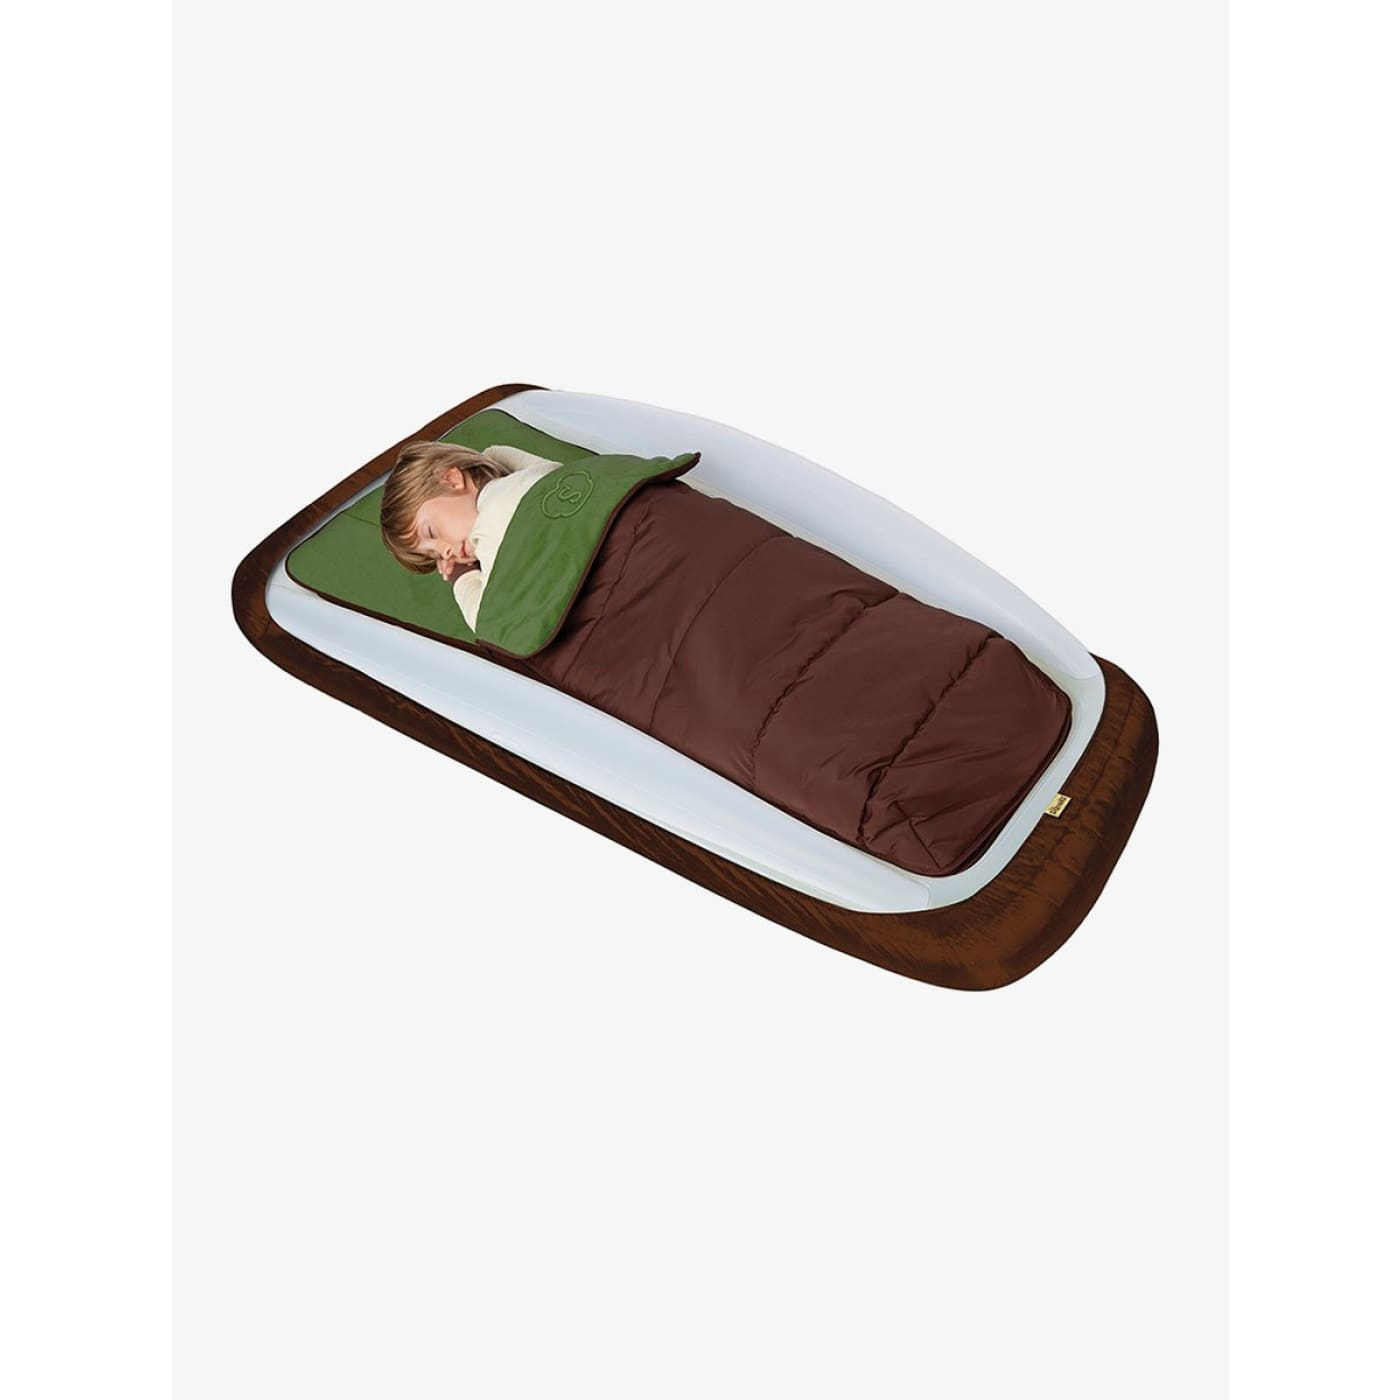 The Shrunks Outdoor Toddler Travel Bed Bundle - ON THE GO - PORTACOTS/ACCESSORIES